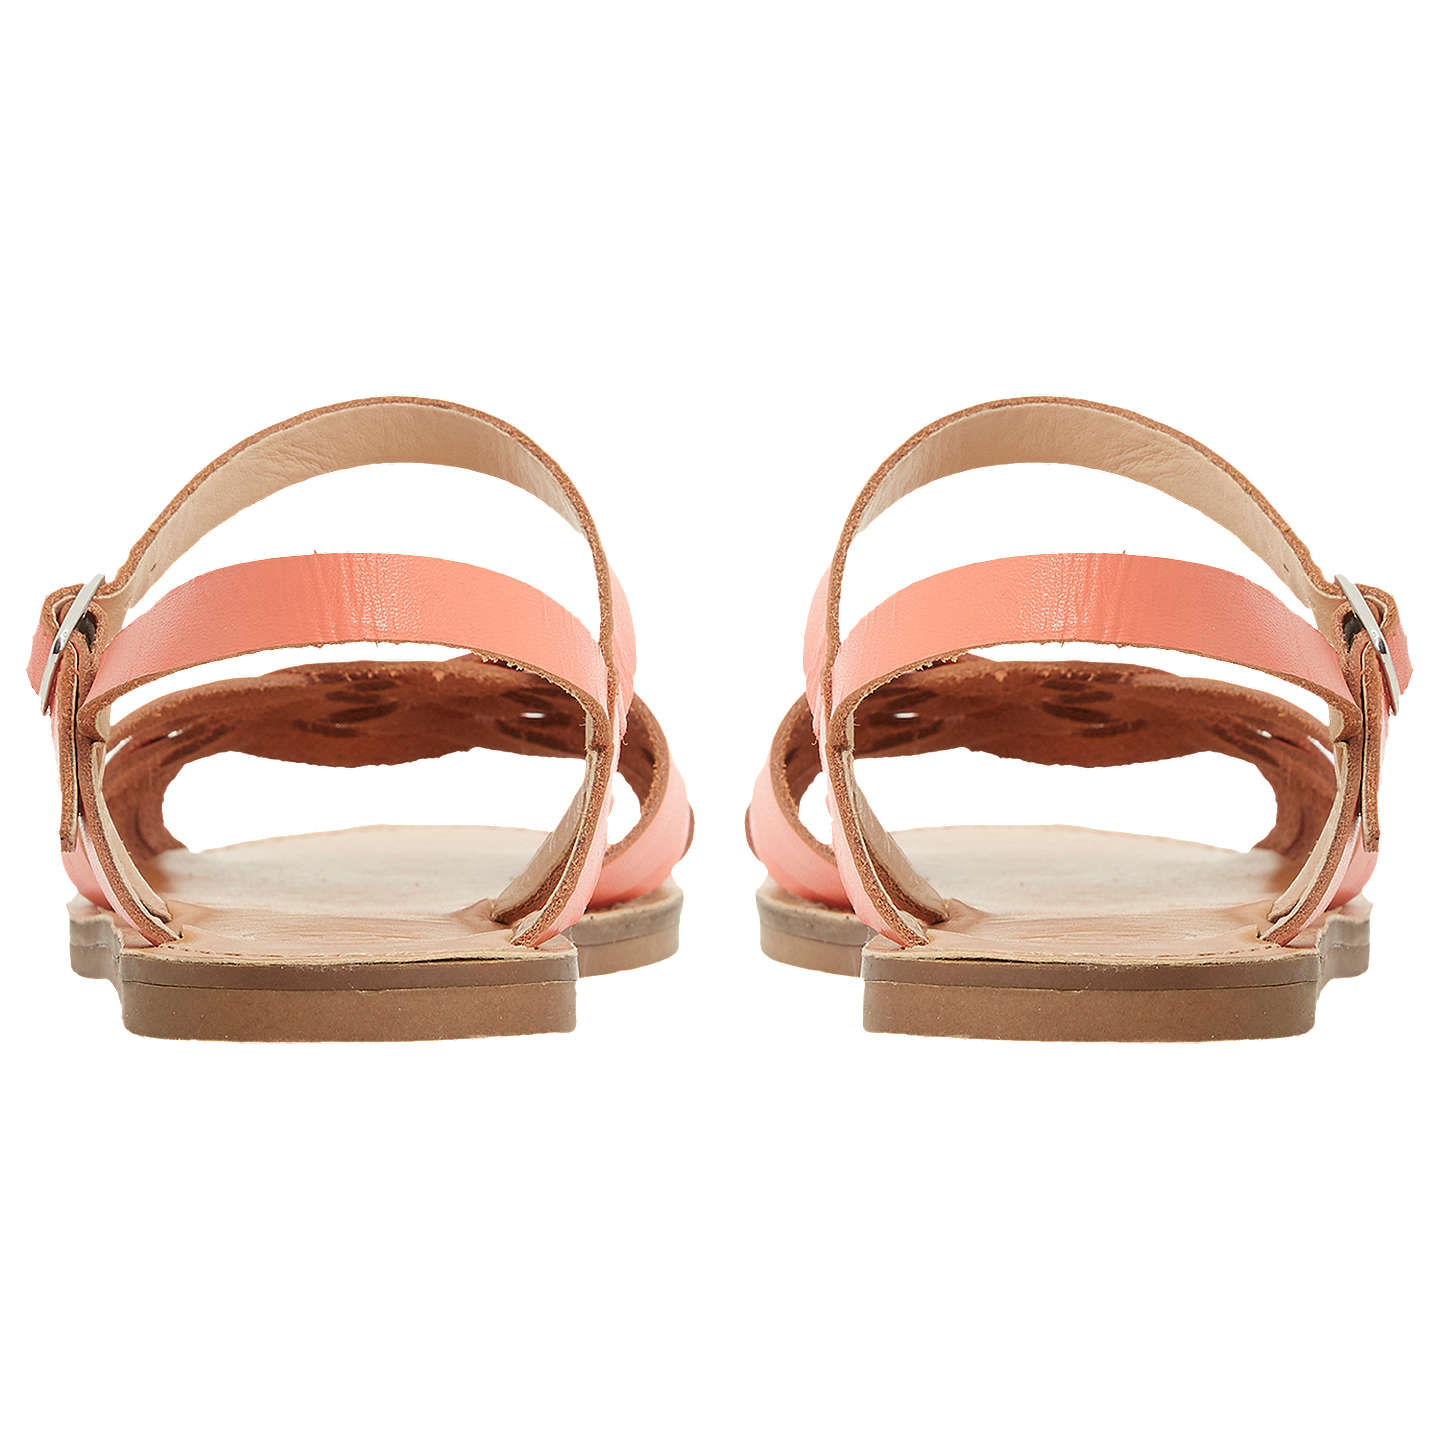 BuyDune Lattice Flat Sandals, Bright Orange, 5 Online at johnlewis.com